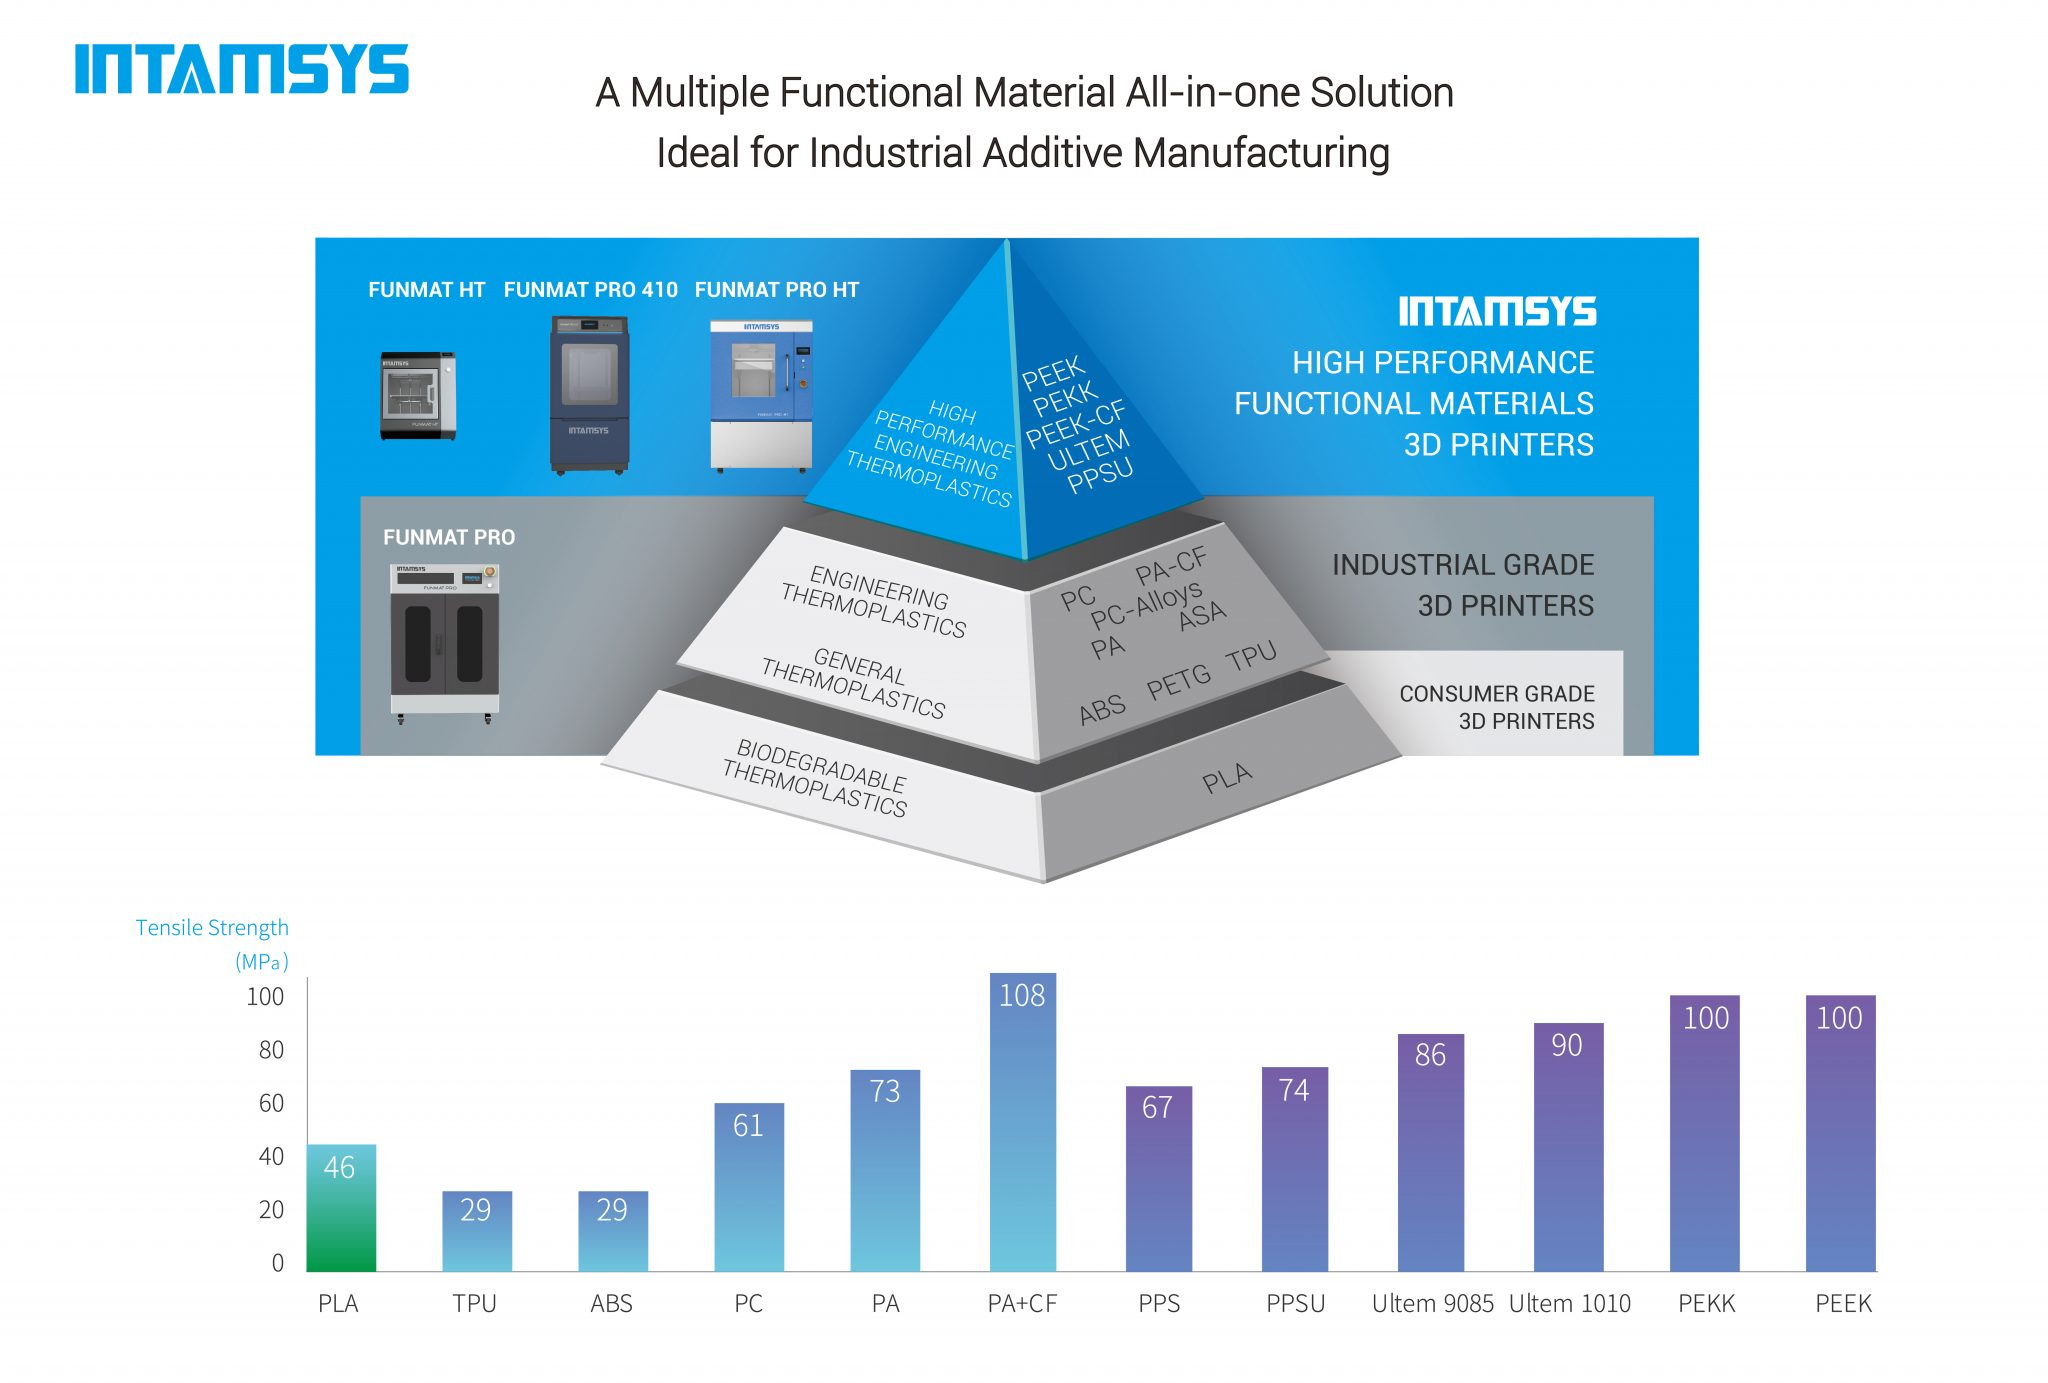 INTAMSYS high performance functional materials for 3D printing.